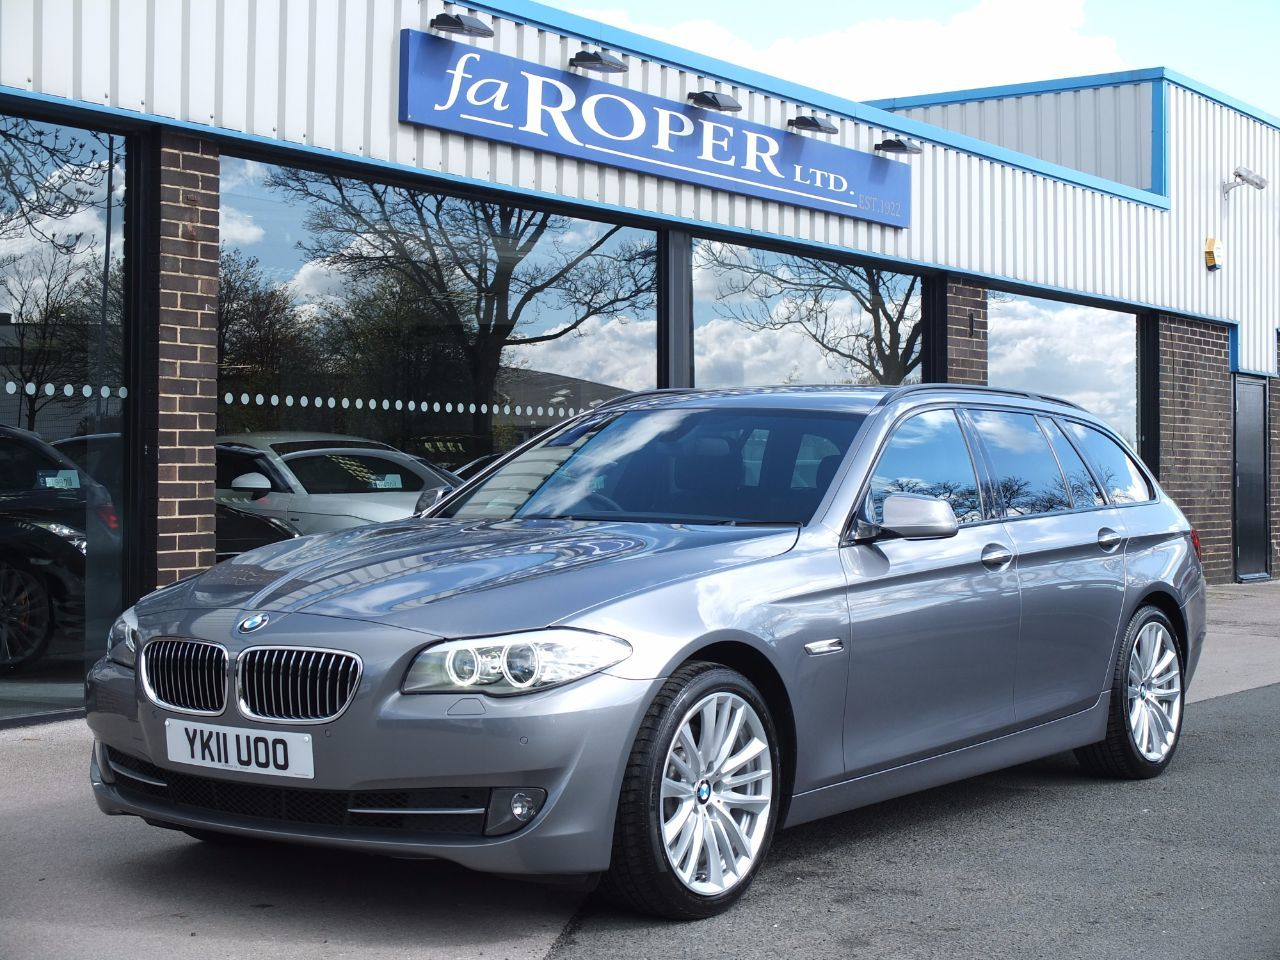 second hand bmw 5 series 525d 3 0 touring se auto dynamic and media packs spec for sale in. Black Bedroom Furniture Sets. Home Design Ideas